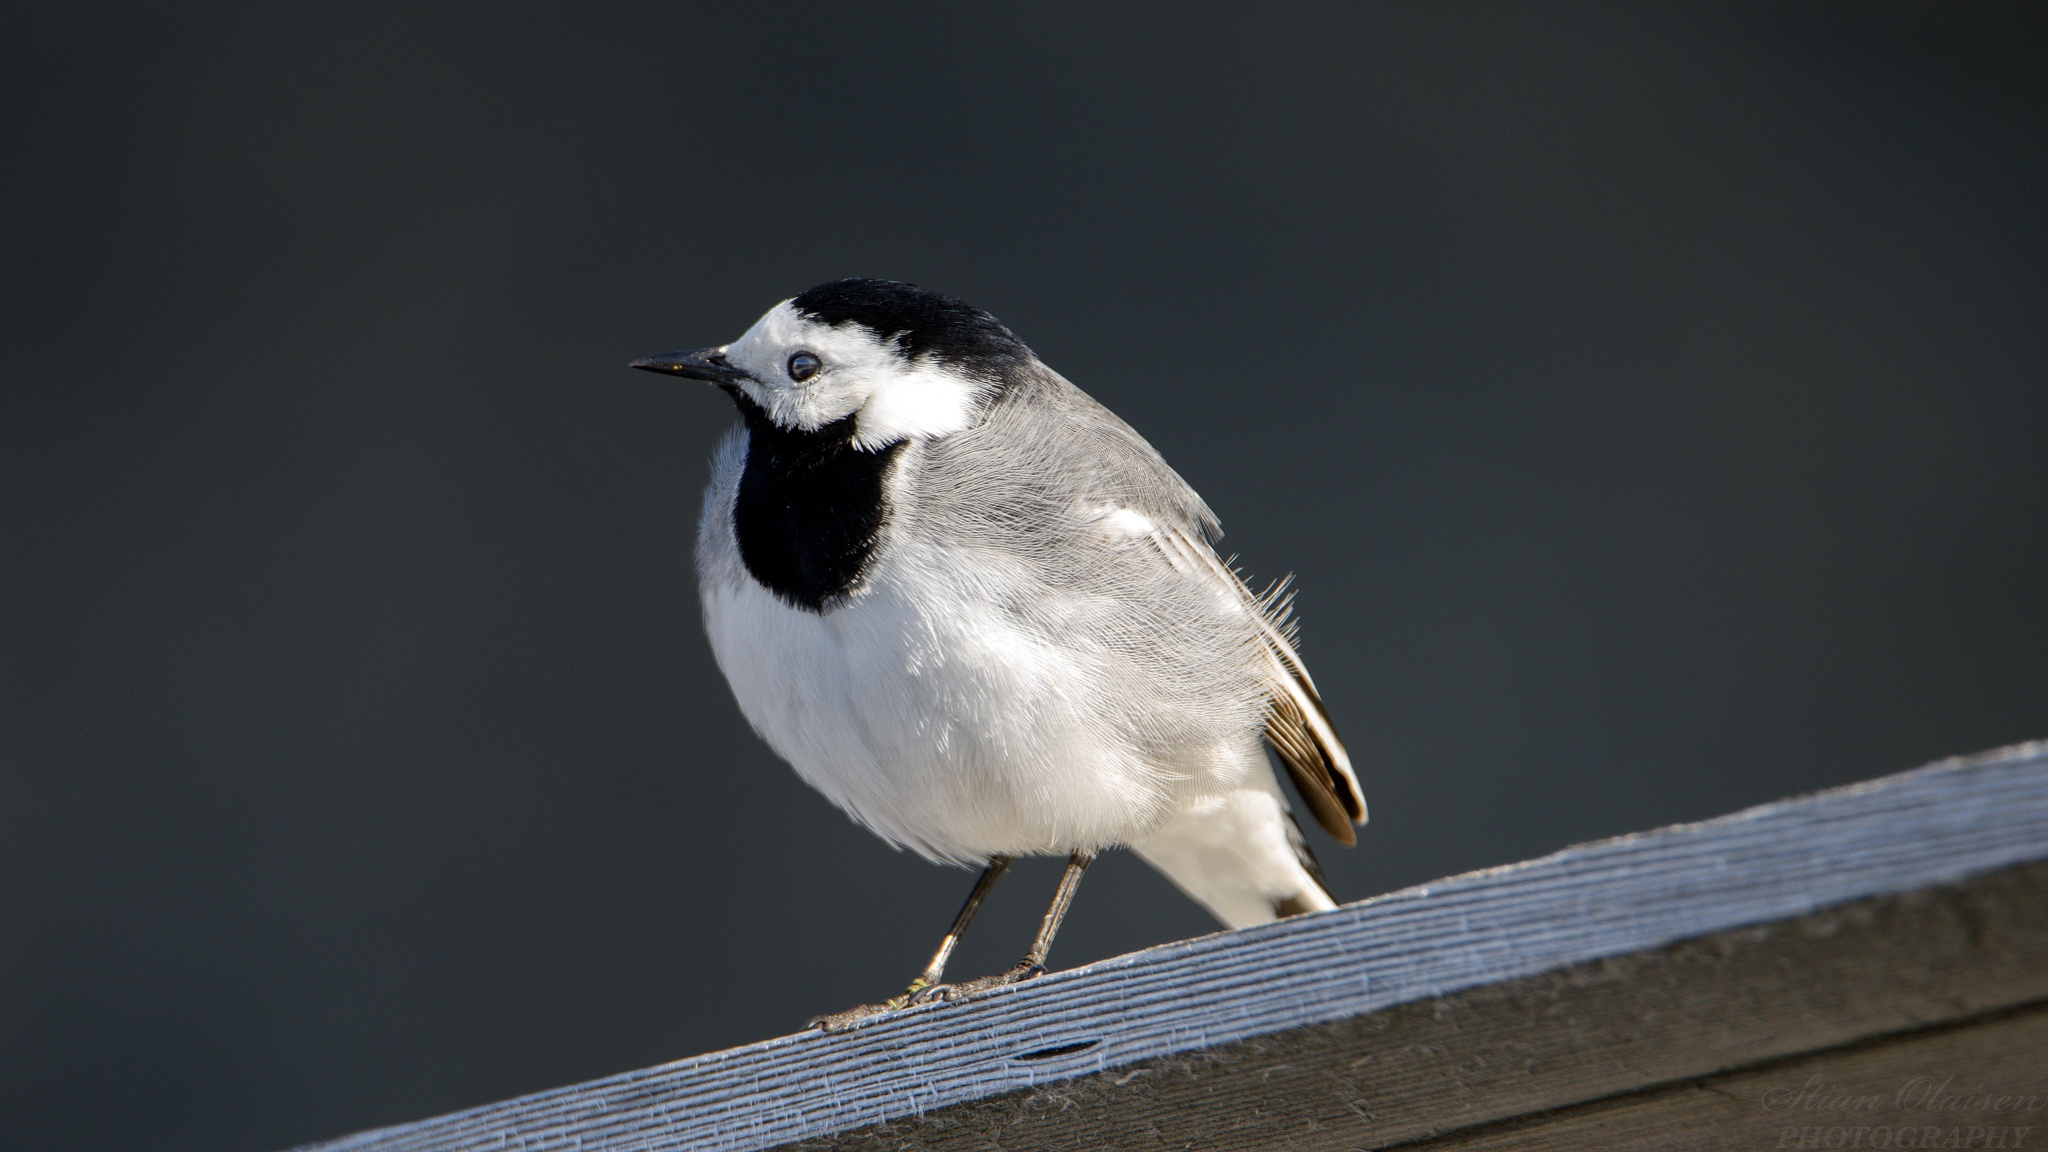 Wagtail by Stian Olaisen